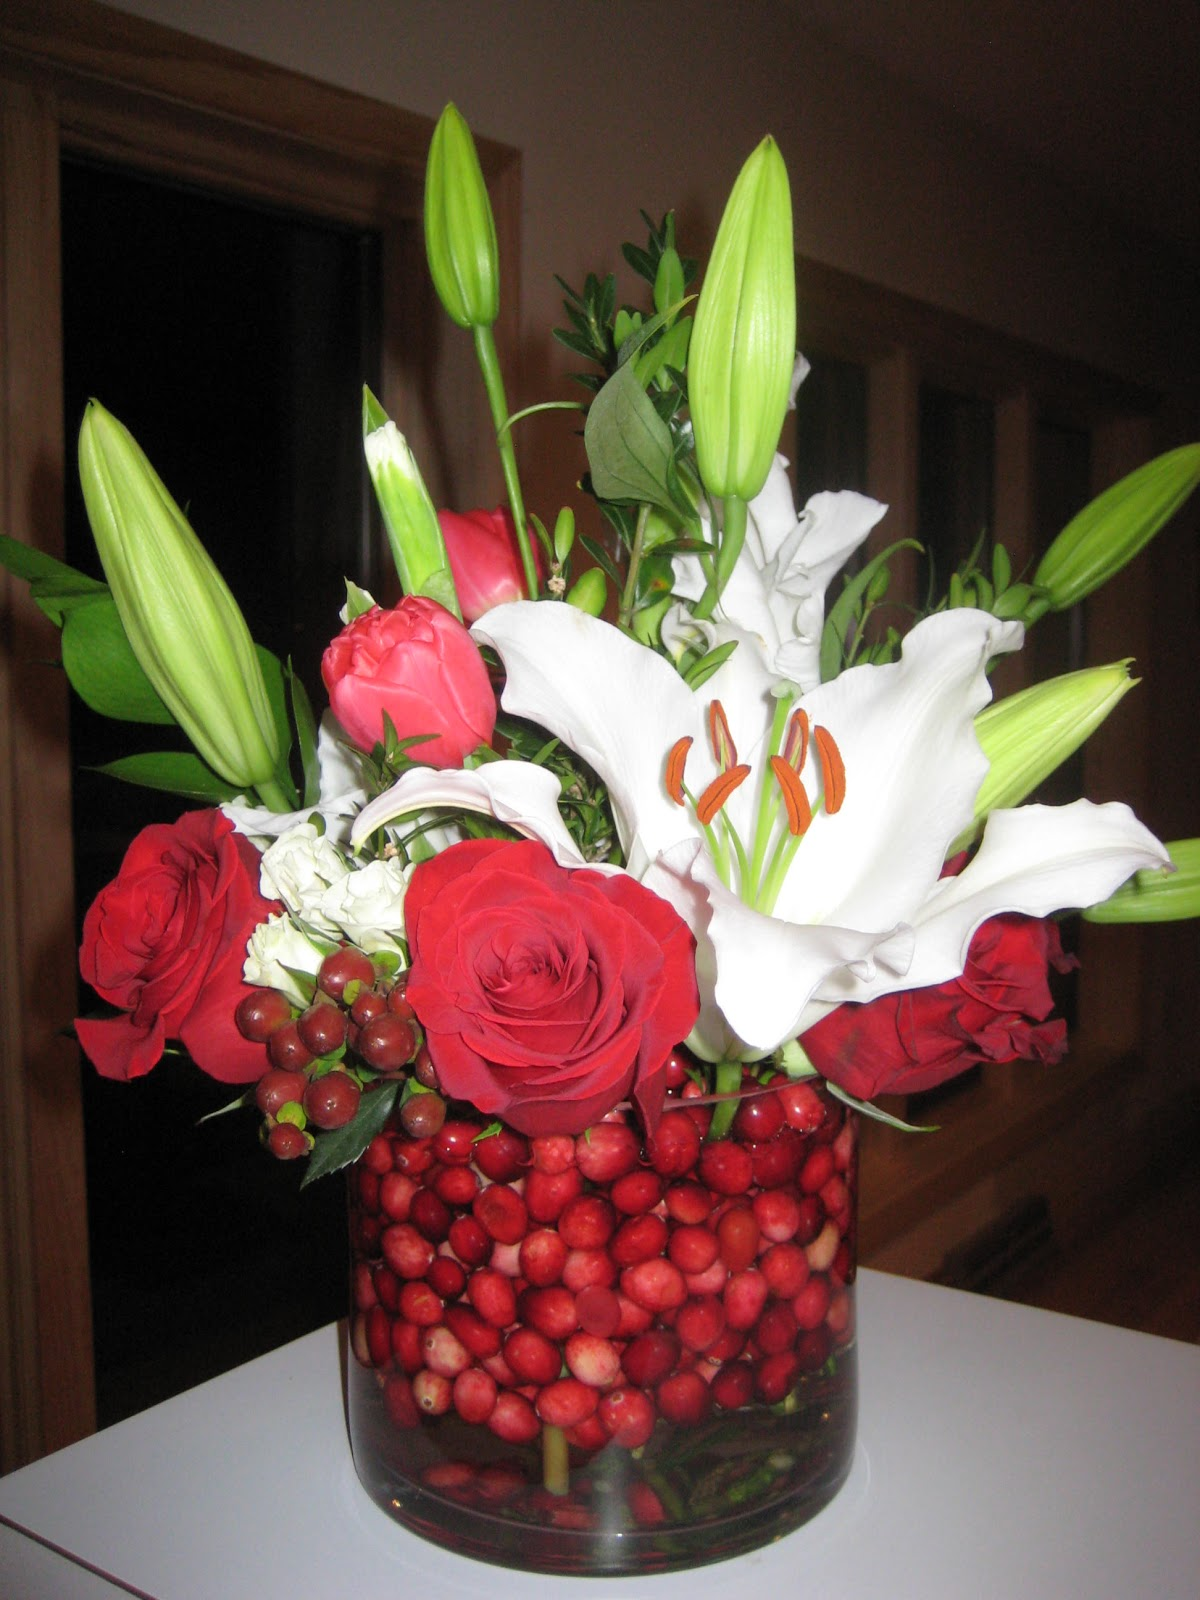 Allison phalen floral design november 2010 i used red roses burgundy calla lilies white oriental lilies and other seasonal flowers and greens to complete their designs it was the perfect kick off mightylinksfo